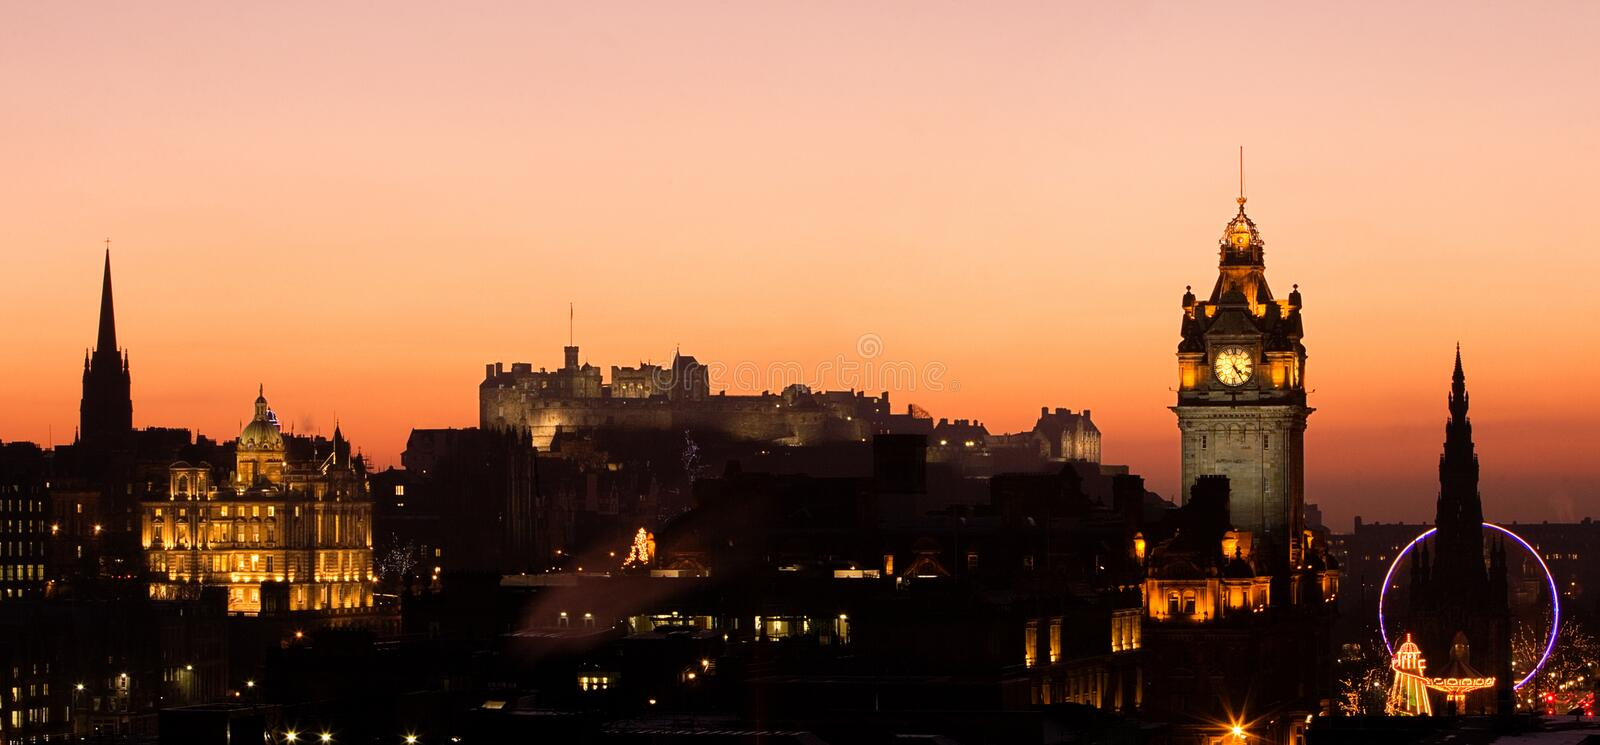 Edinburgh Castle Sunset royalty free stock images